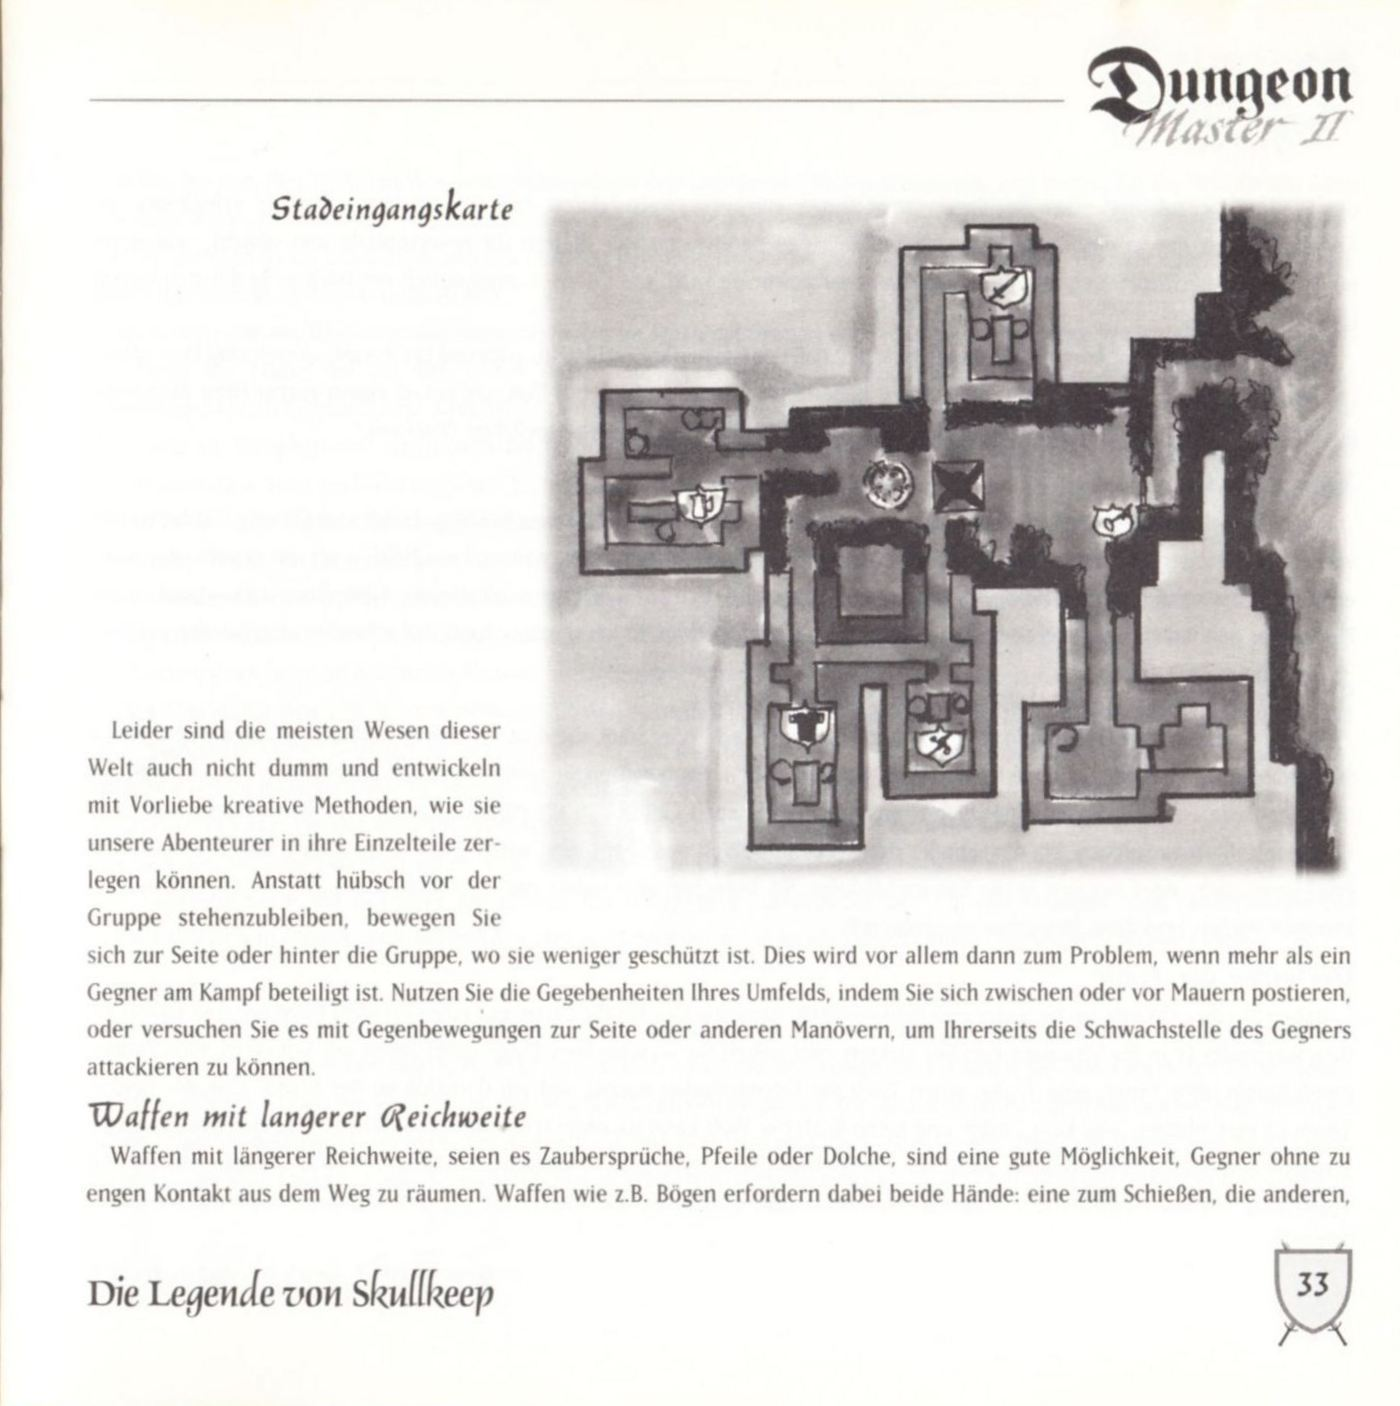 Game - Dungeon Master II - DE - PC - Blackmarket With Booklet - Booklet - Page 035 - Scan